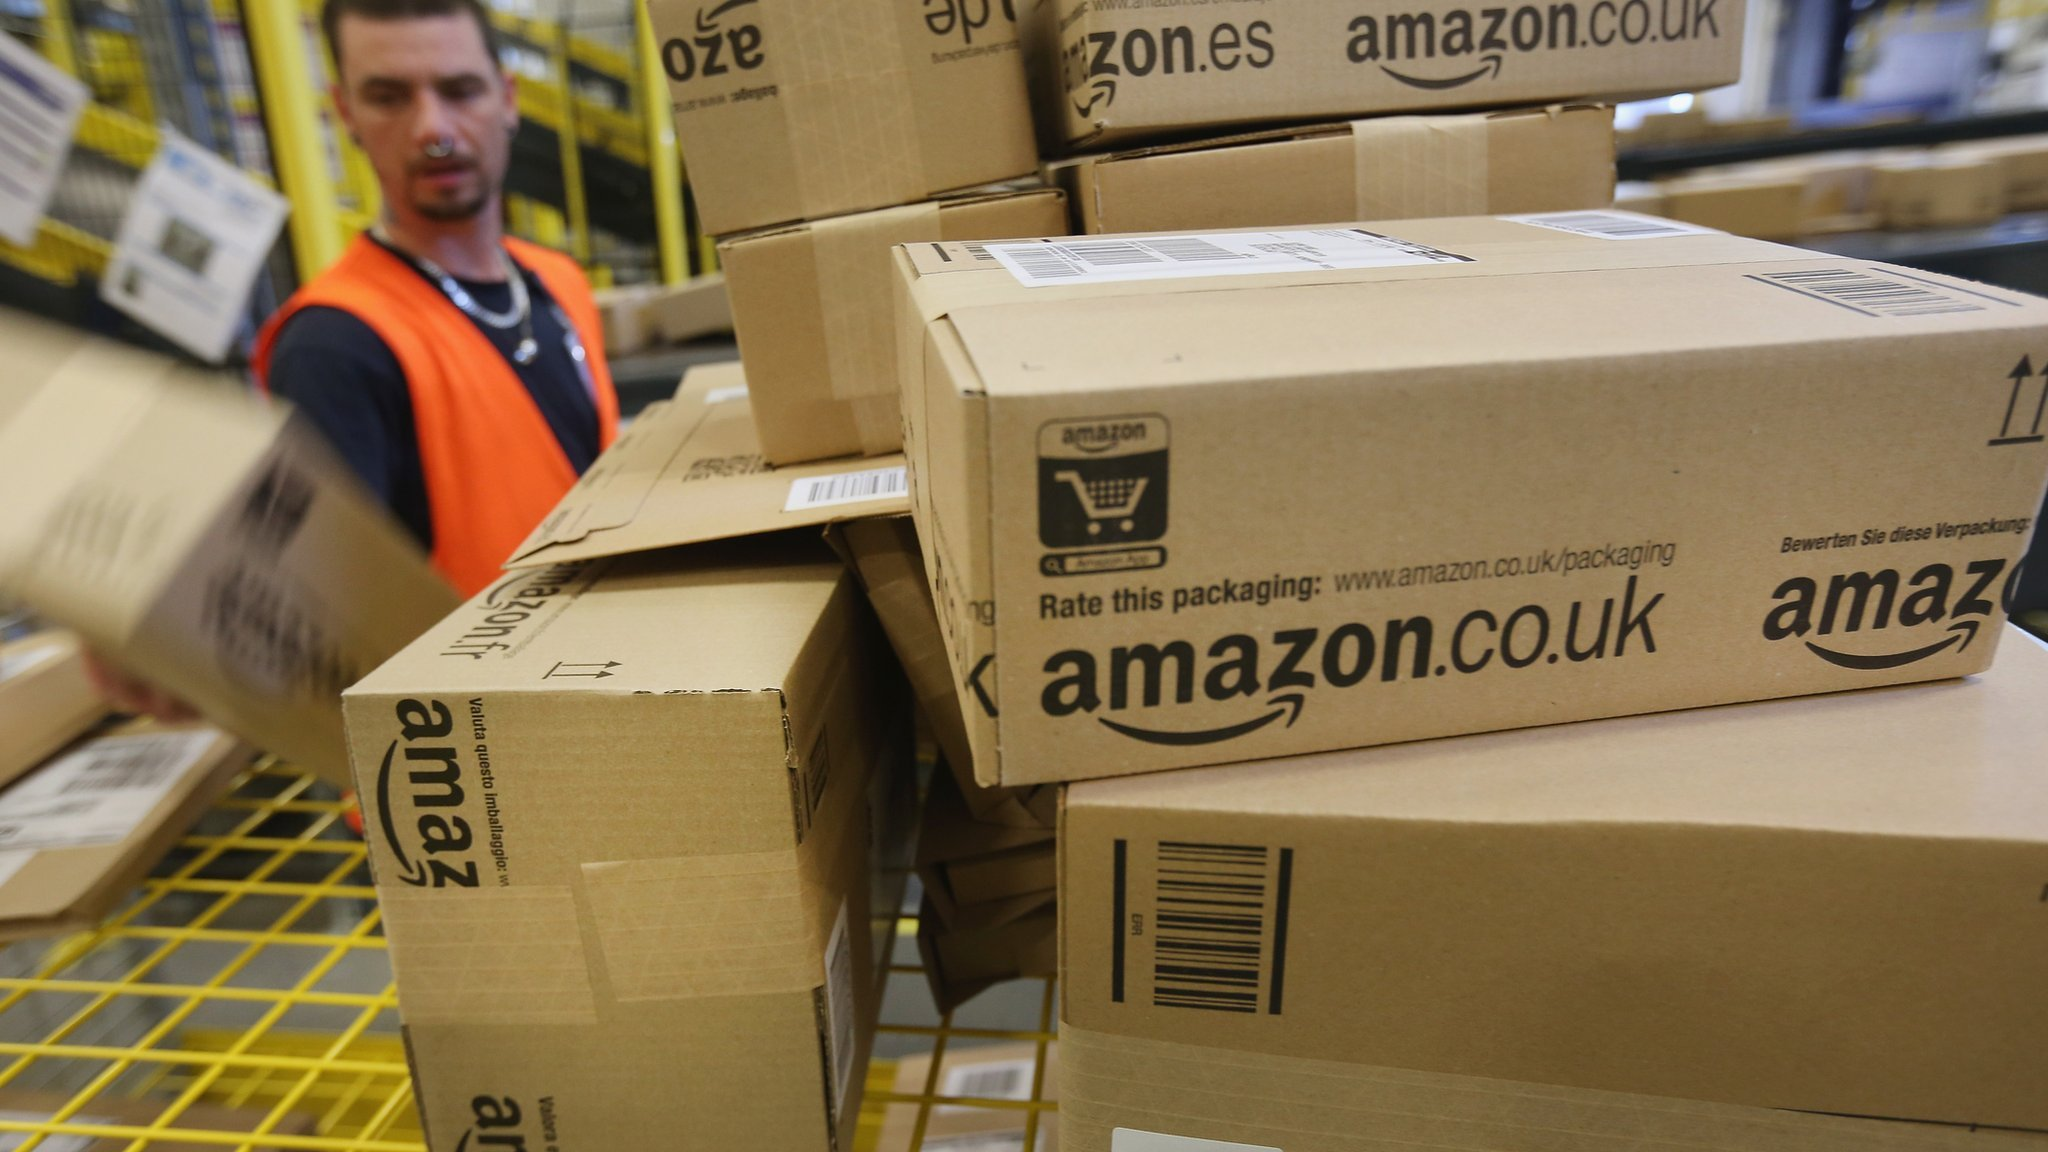 Amazon profits are sharply lower as it invests overseas